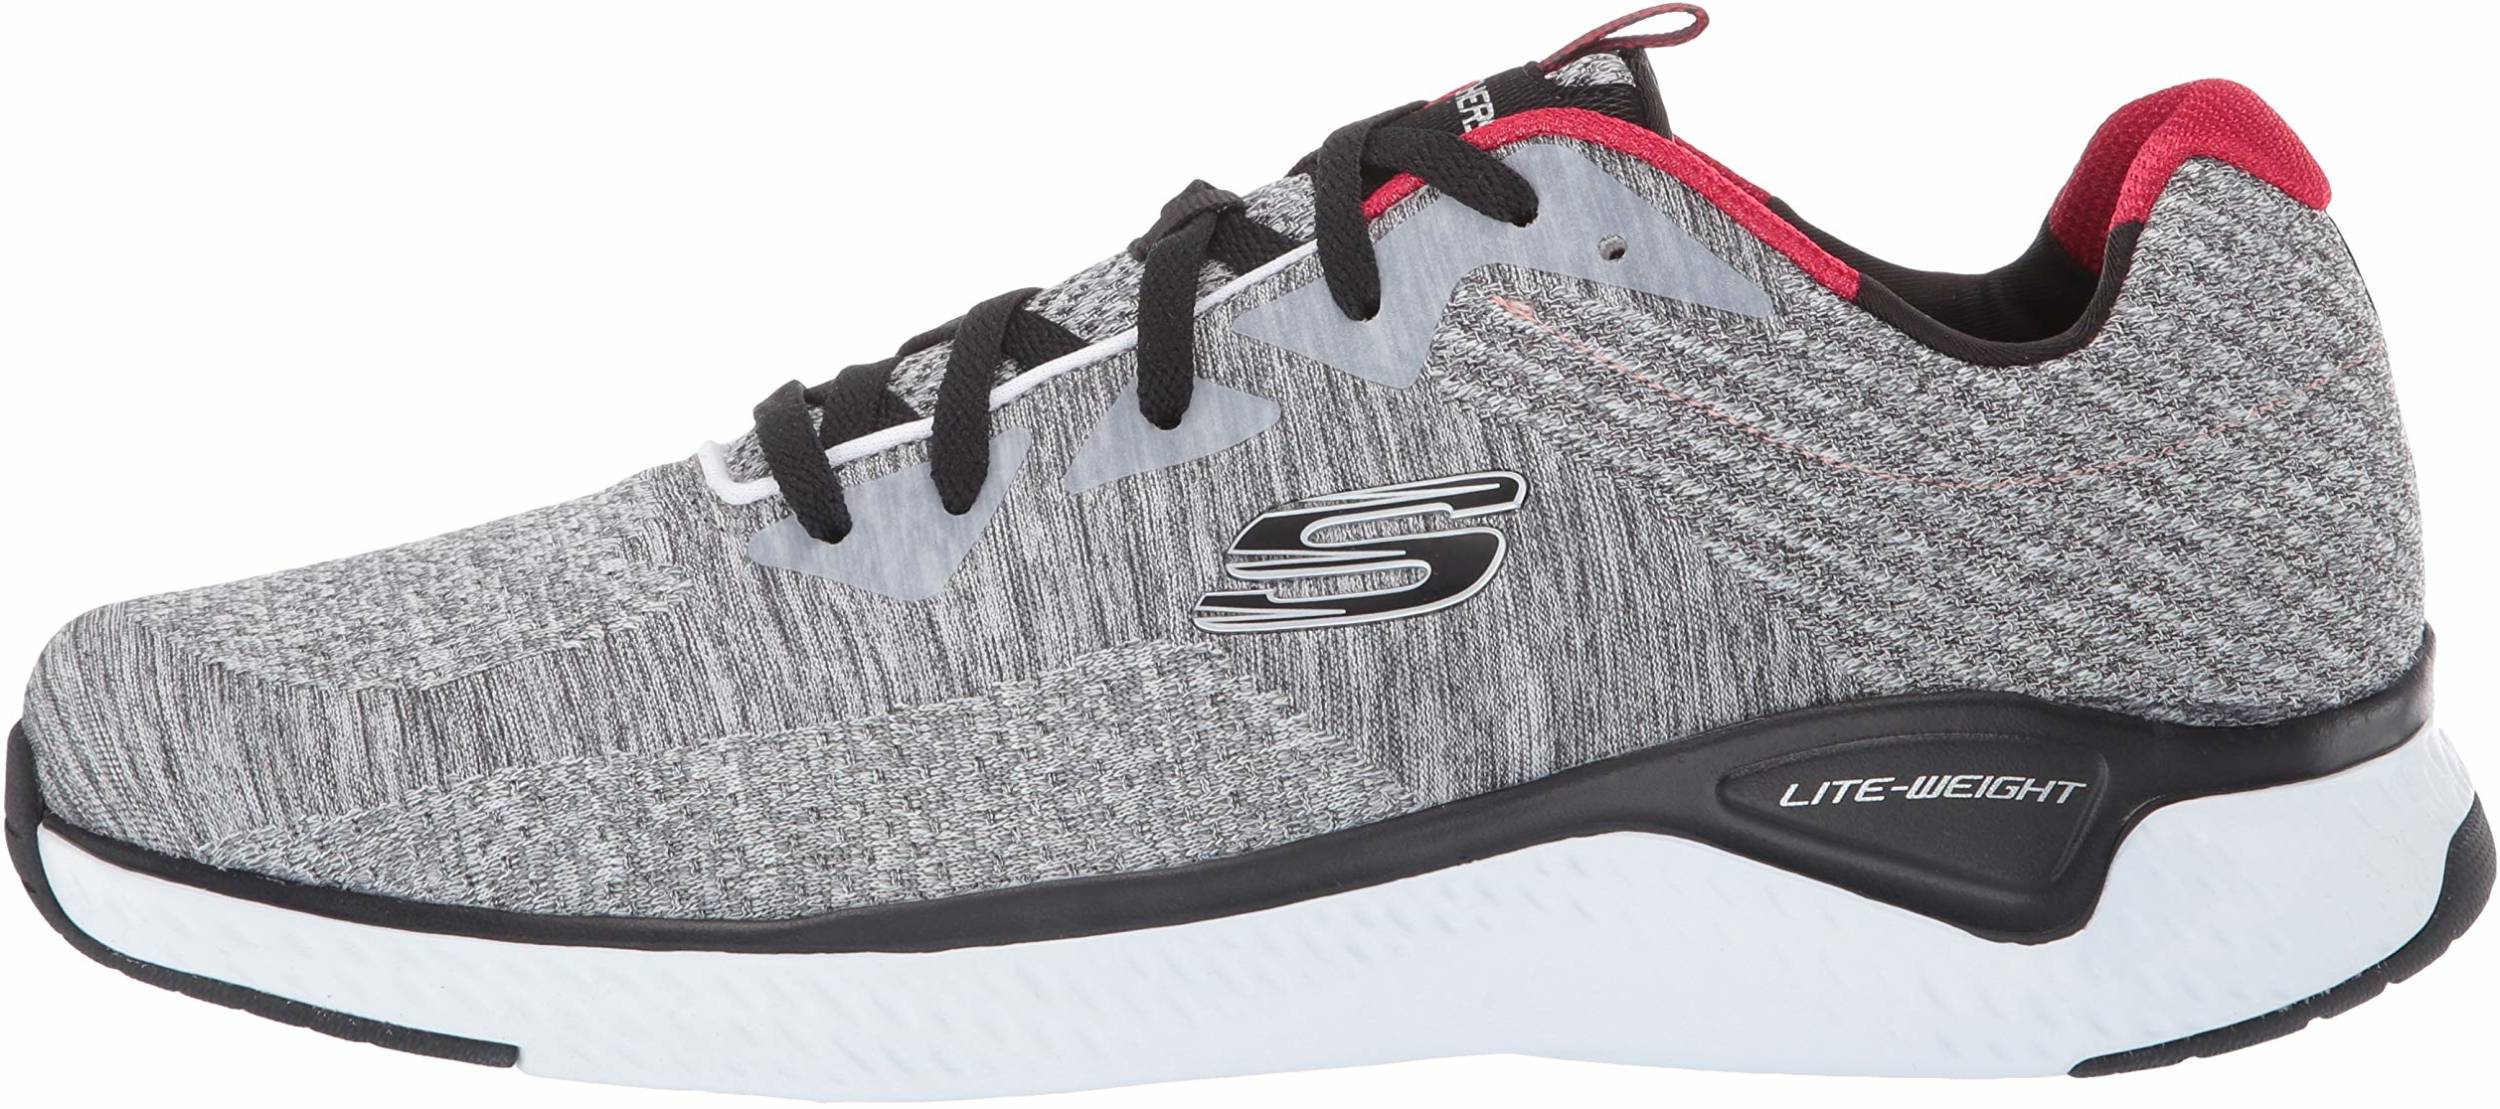 Review of Skechers Solar Fuse